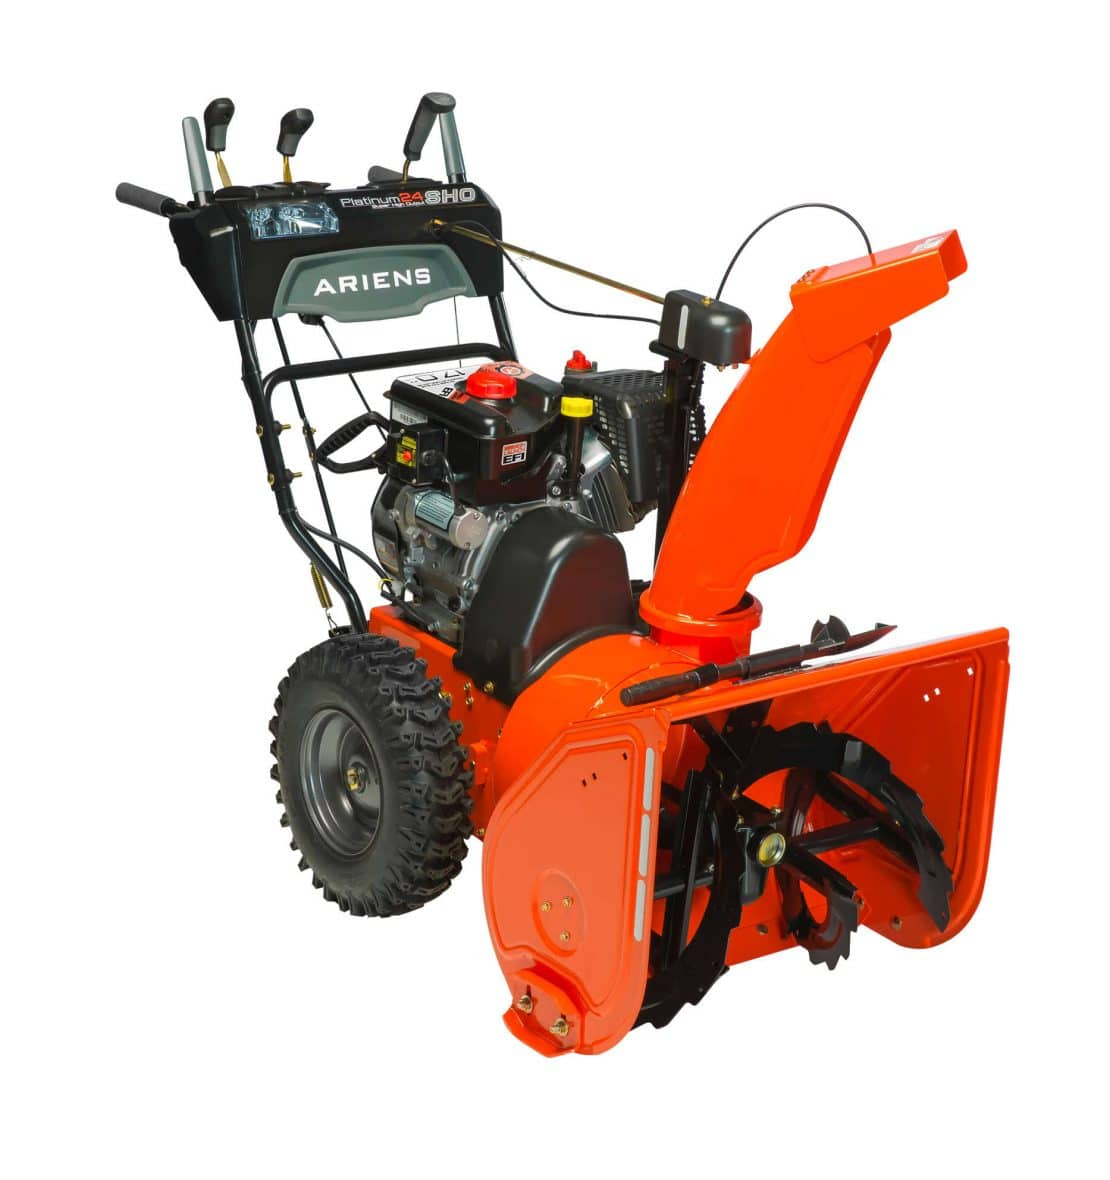 2016 Ariens Snow Blowers - What's New - and Exciting!